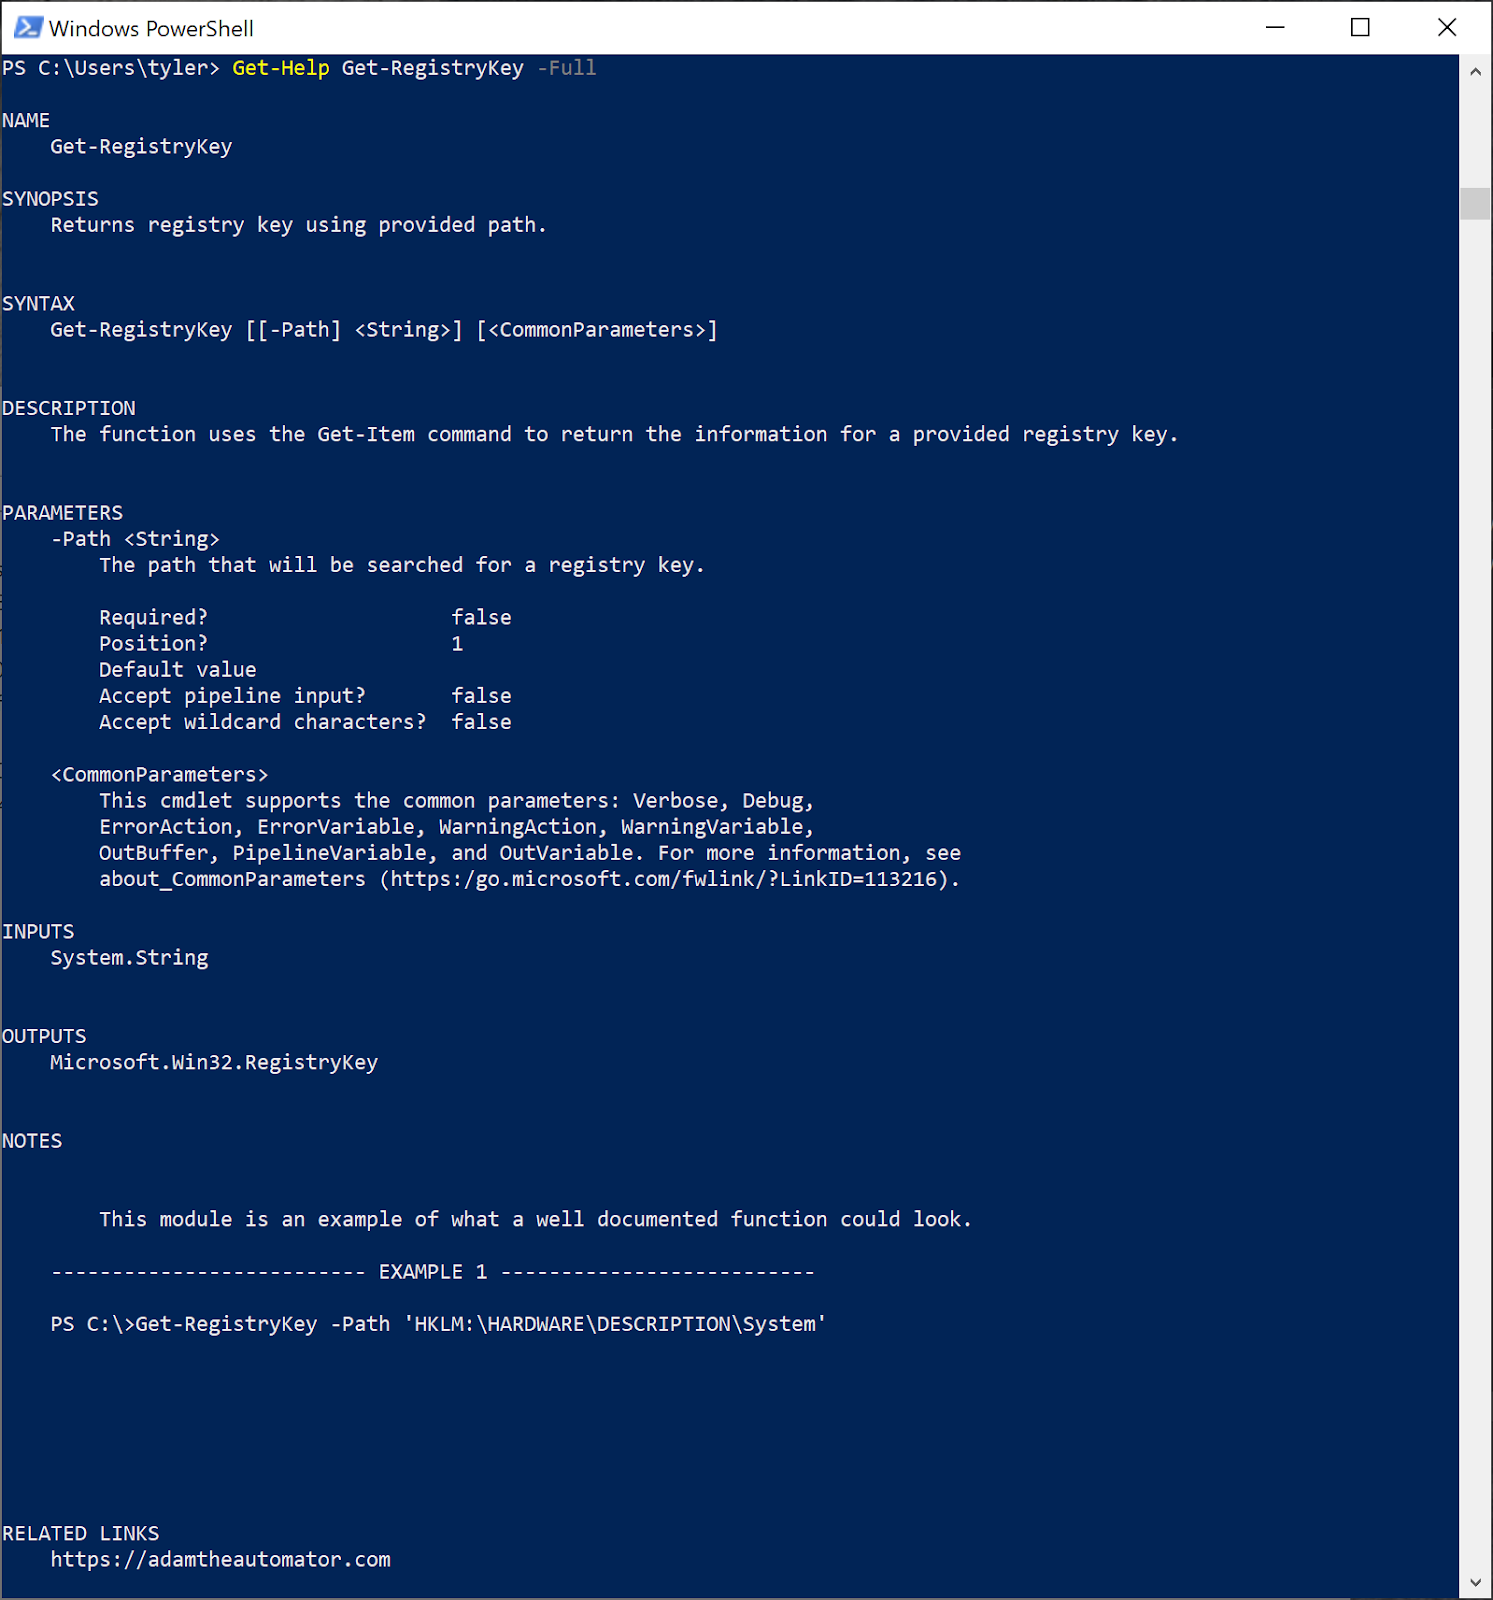 Getting full help content with Get-Help